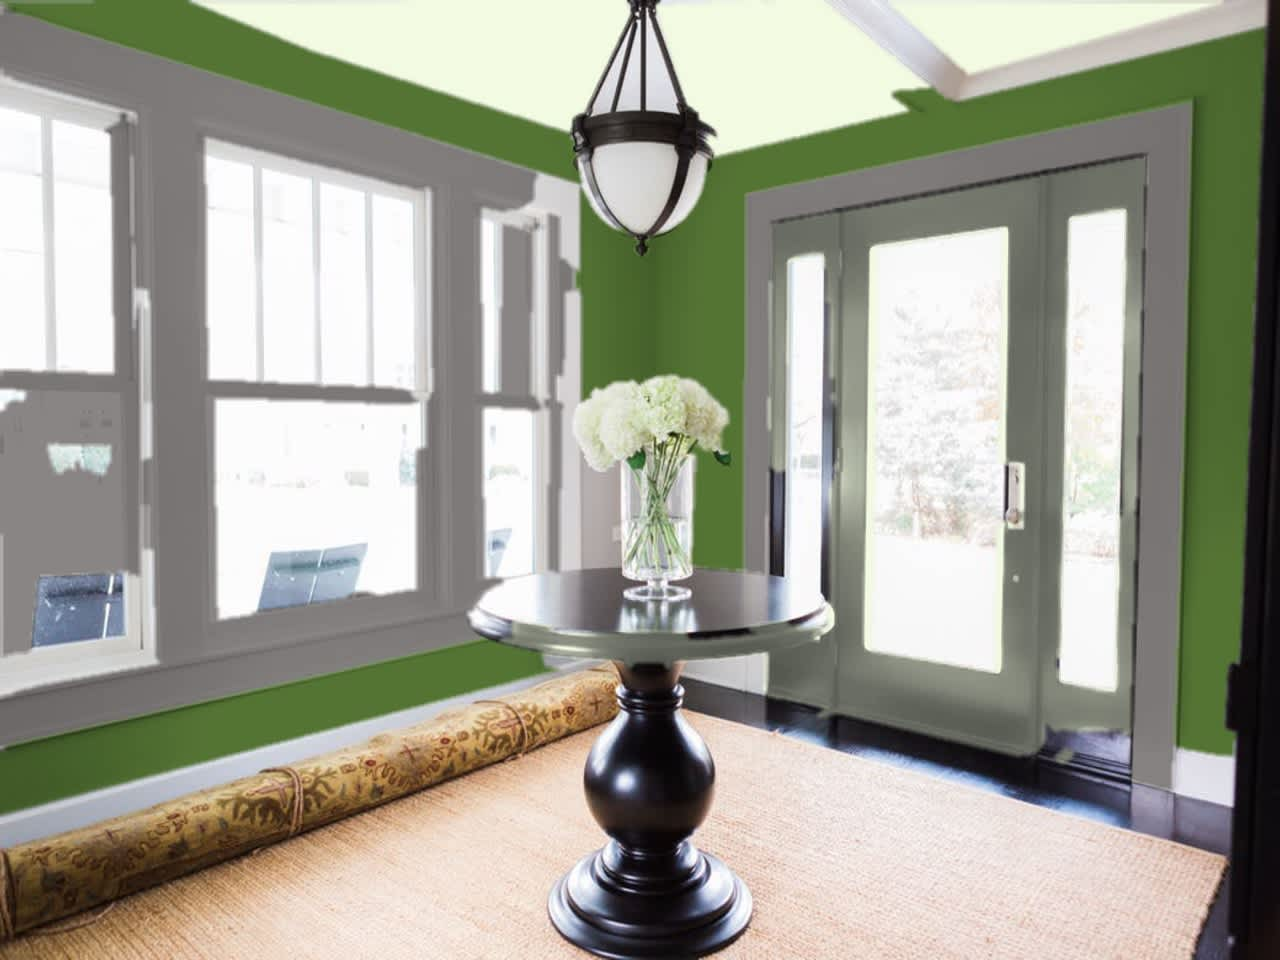 The Best Free Apps To Help You Visualize Paint Color Changes